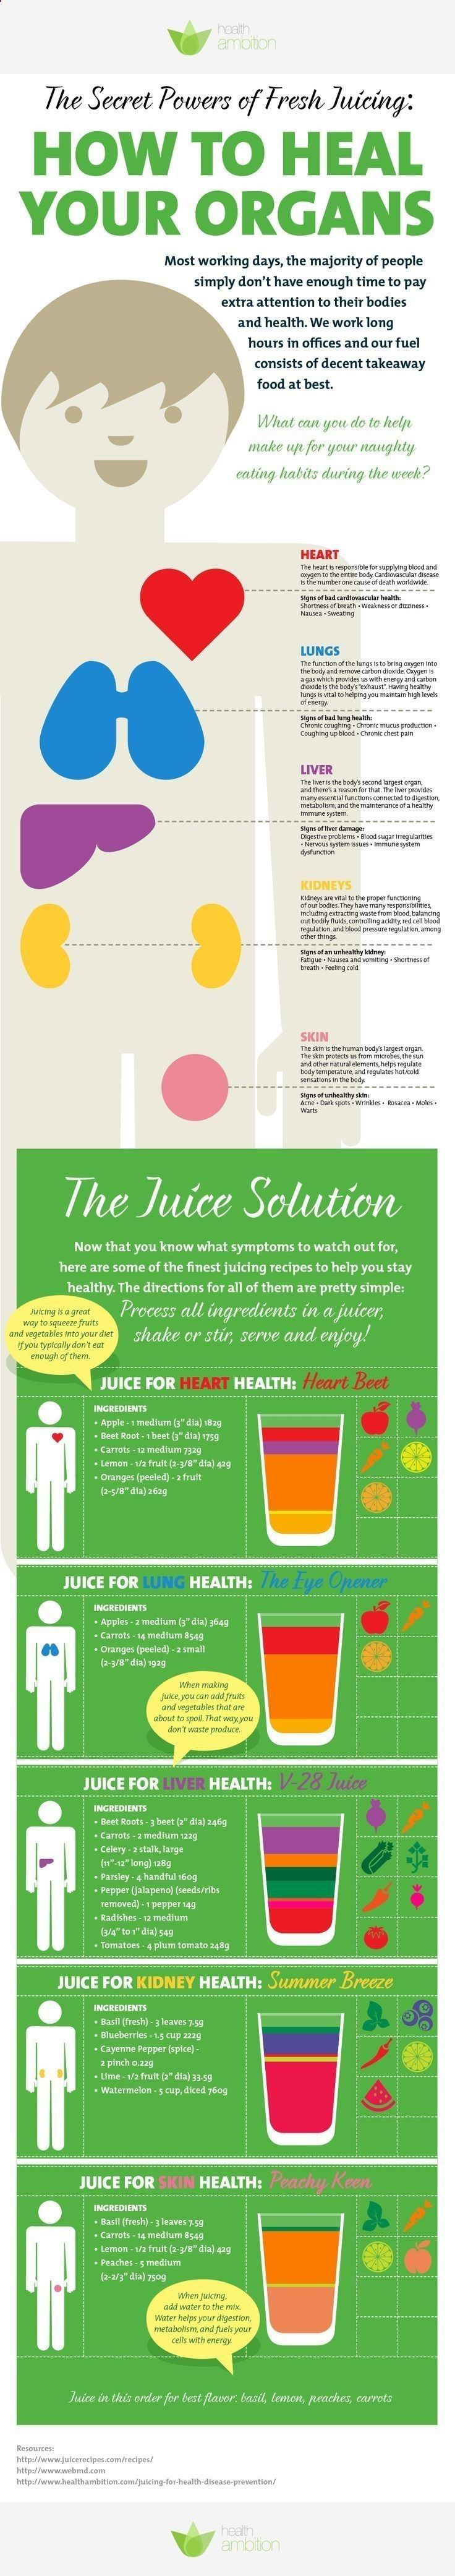 Diet Tips Eat Stop Eat - Diet Tips Eat Stop Eat - The Secret Powers of Fresh Juicing: How to Heal Your Organs In Just One Day This Simple Strategy Frees You From Complicated Diet Rules - And Eliminates Rebound Weight Gain In Just One Day This Simple Strategy Frees You From Complicated Diet Rules - And Eliminates Rebound Weight Gain